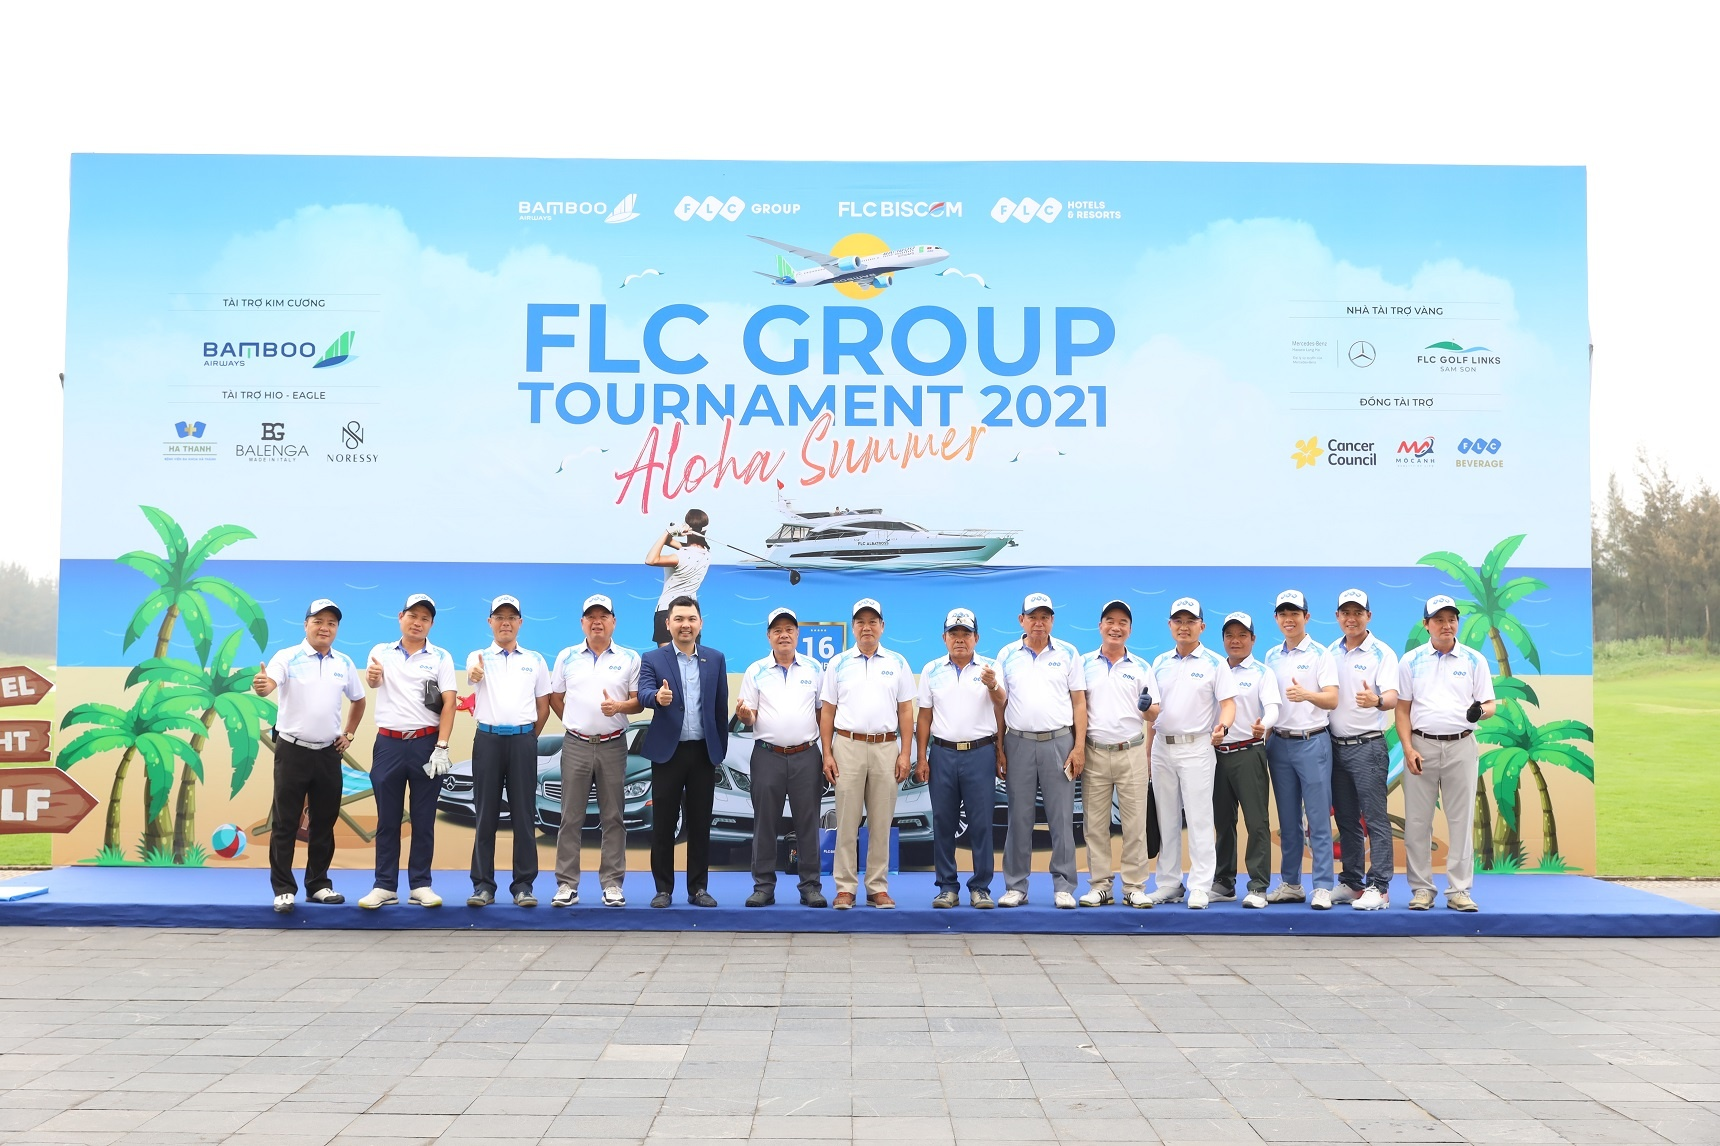 flc group tournament 2021 thu hut dong dao cac golfer